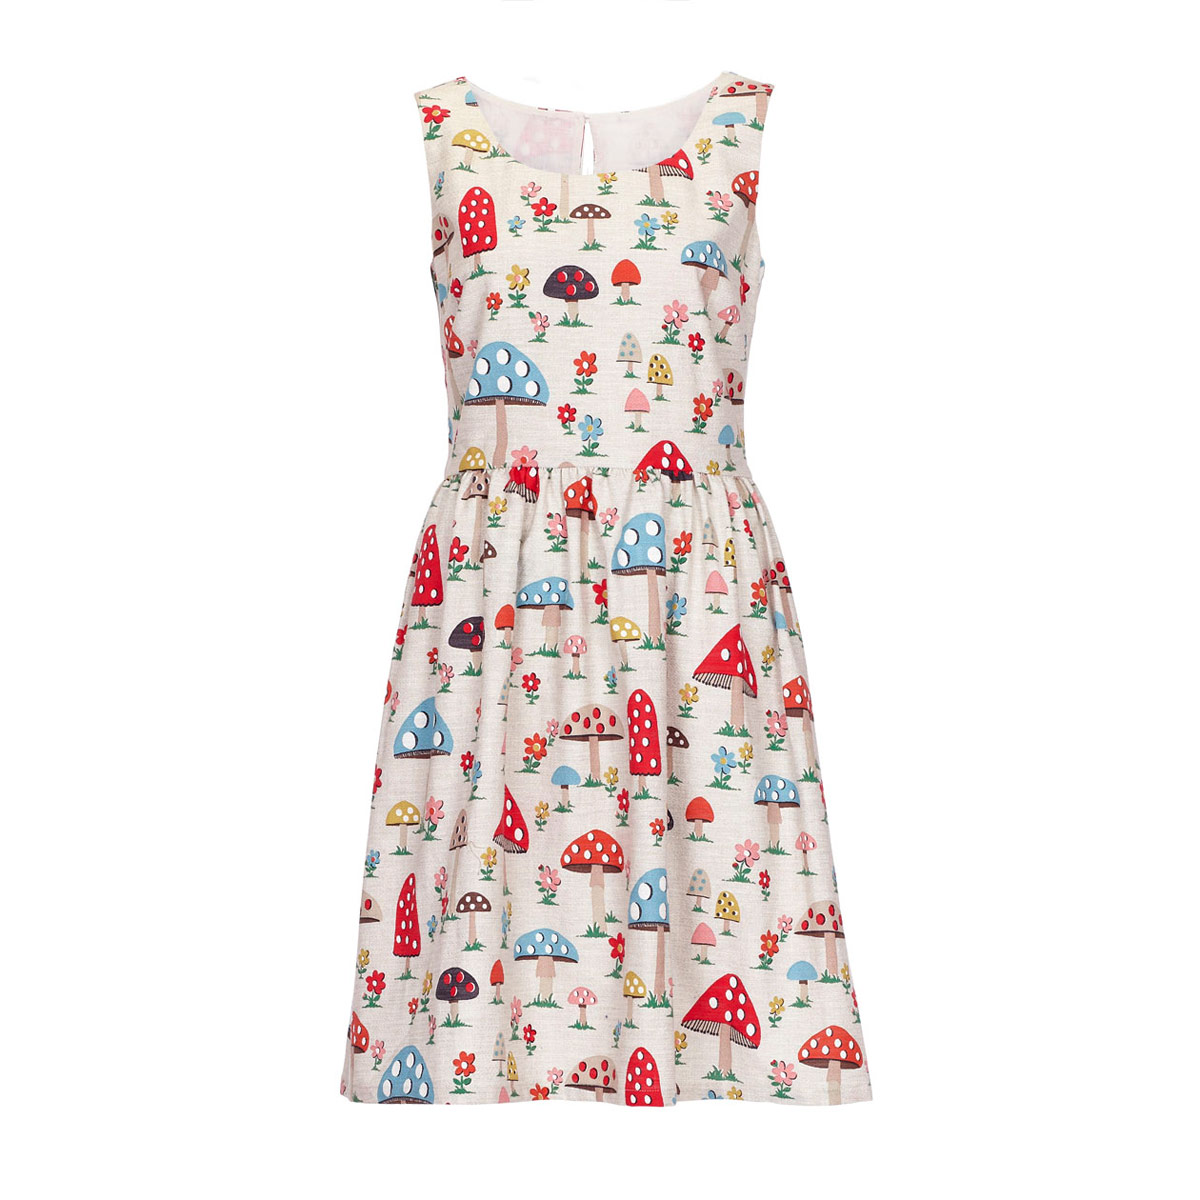 cath kidston not all just florals mushrooms and aliens too